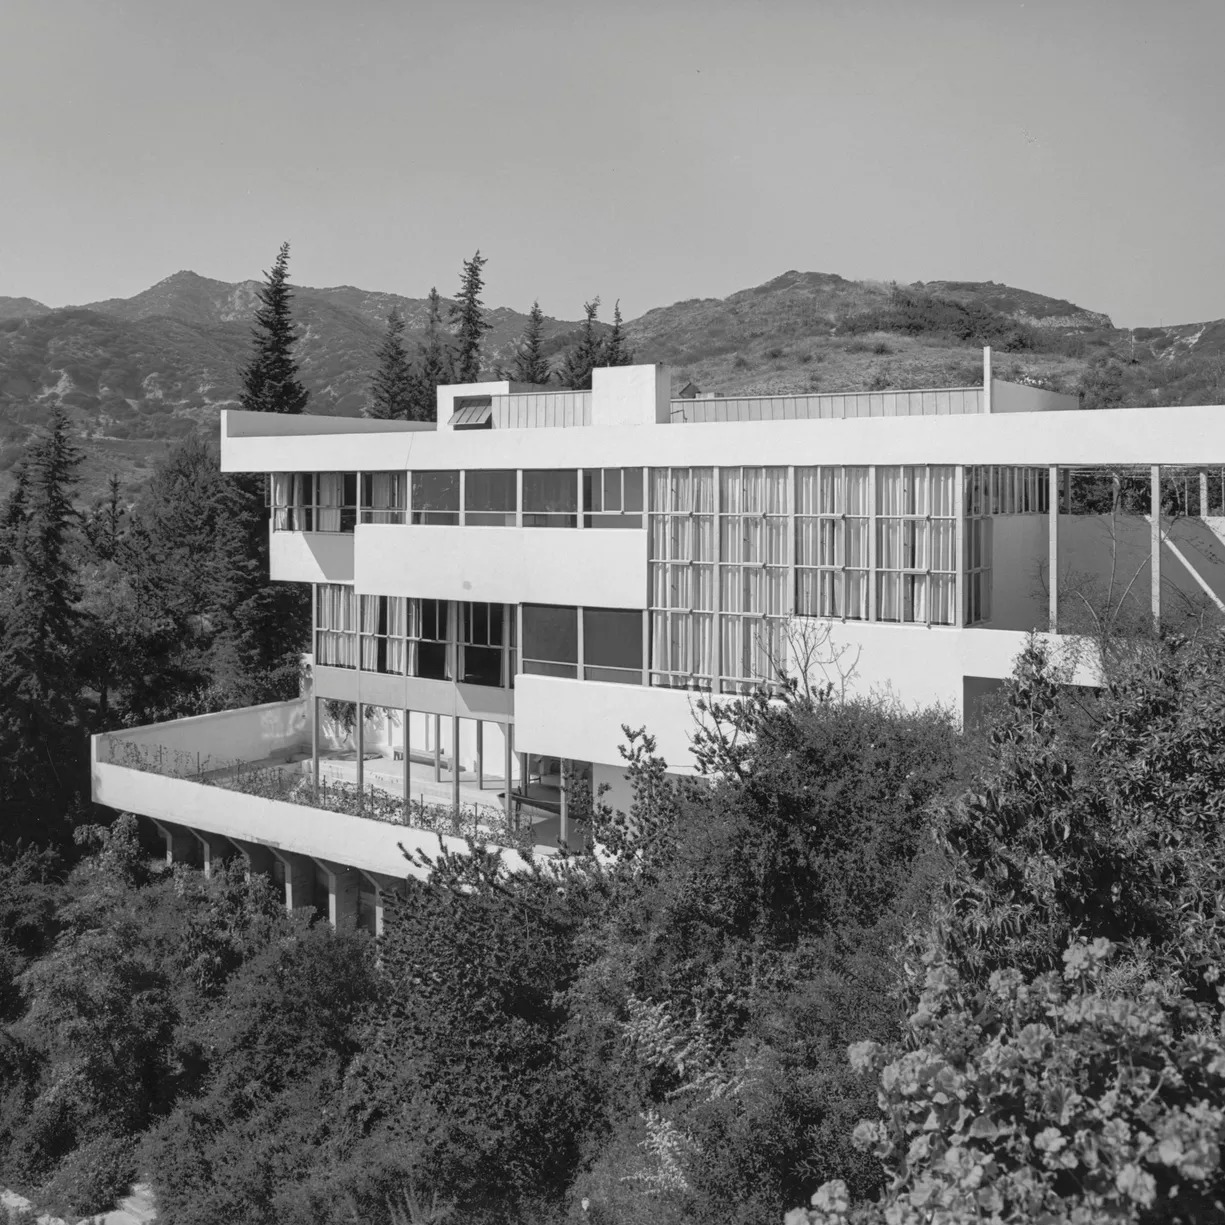 A black-and-white photo of a multi-story modernist house with large windows, porches, and a roof deck.